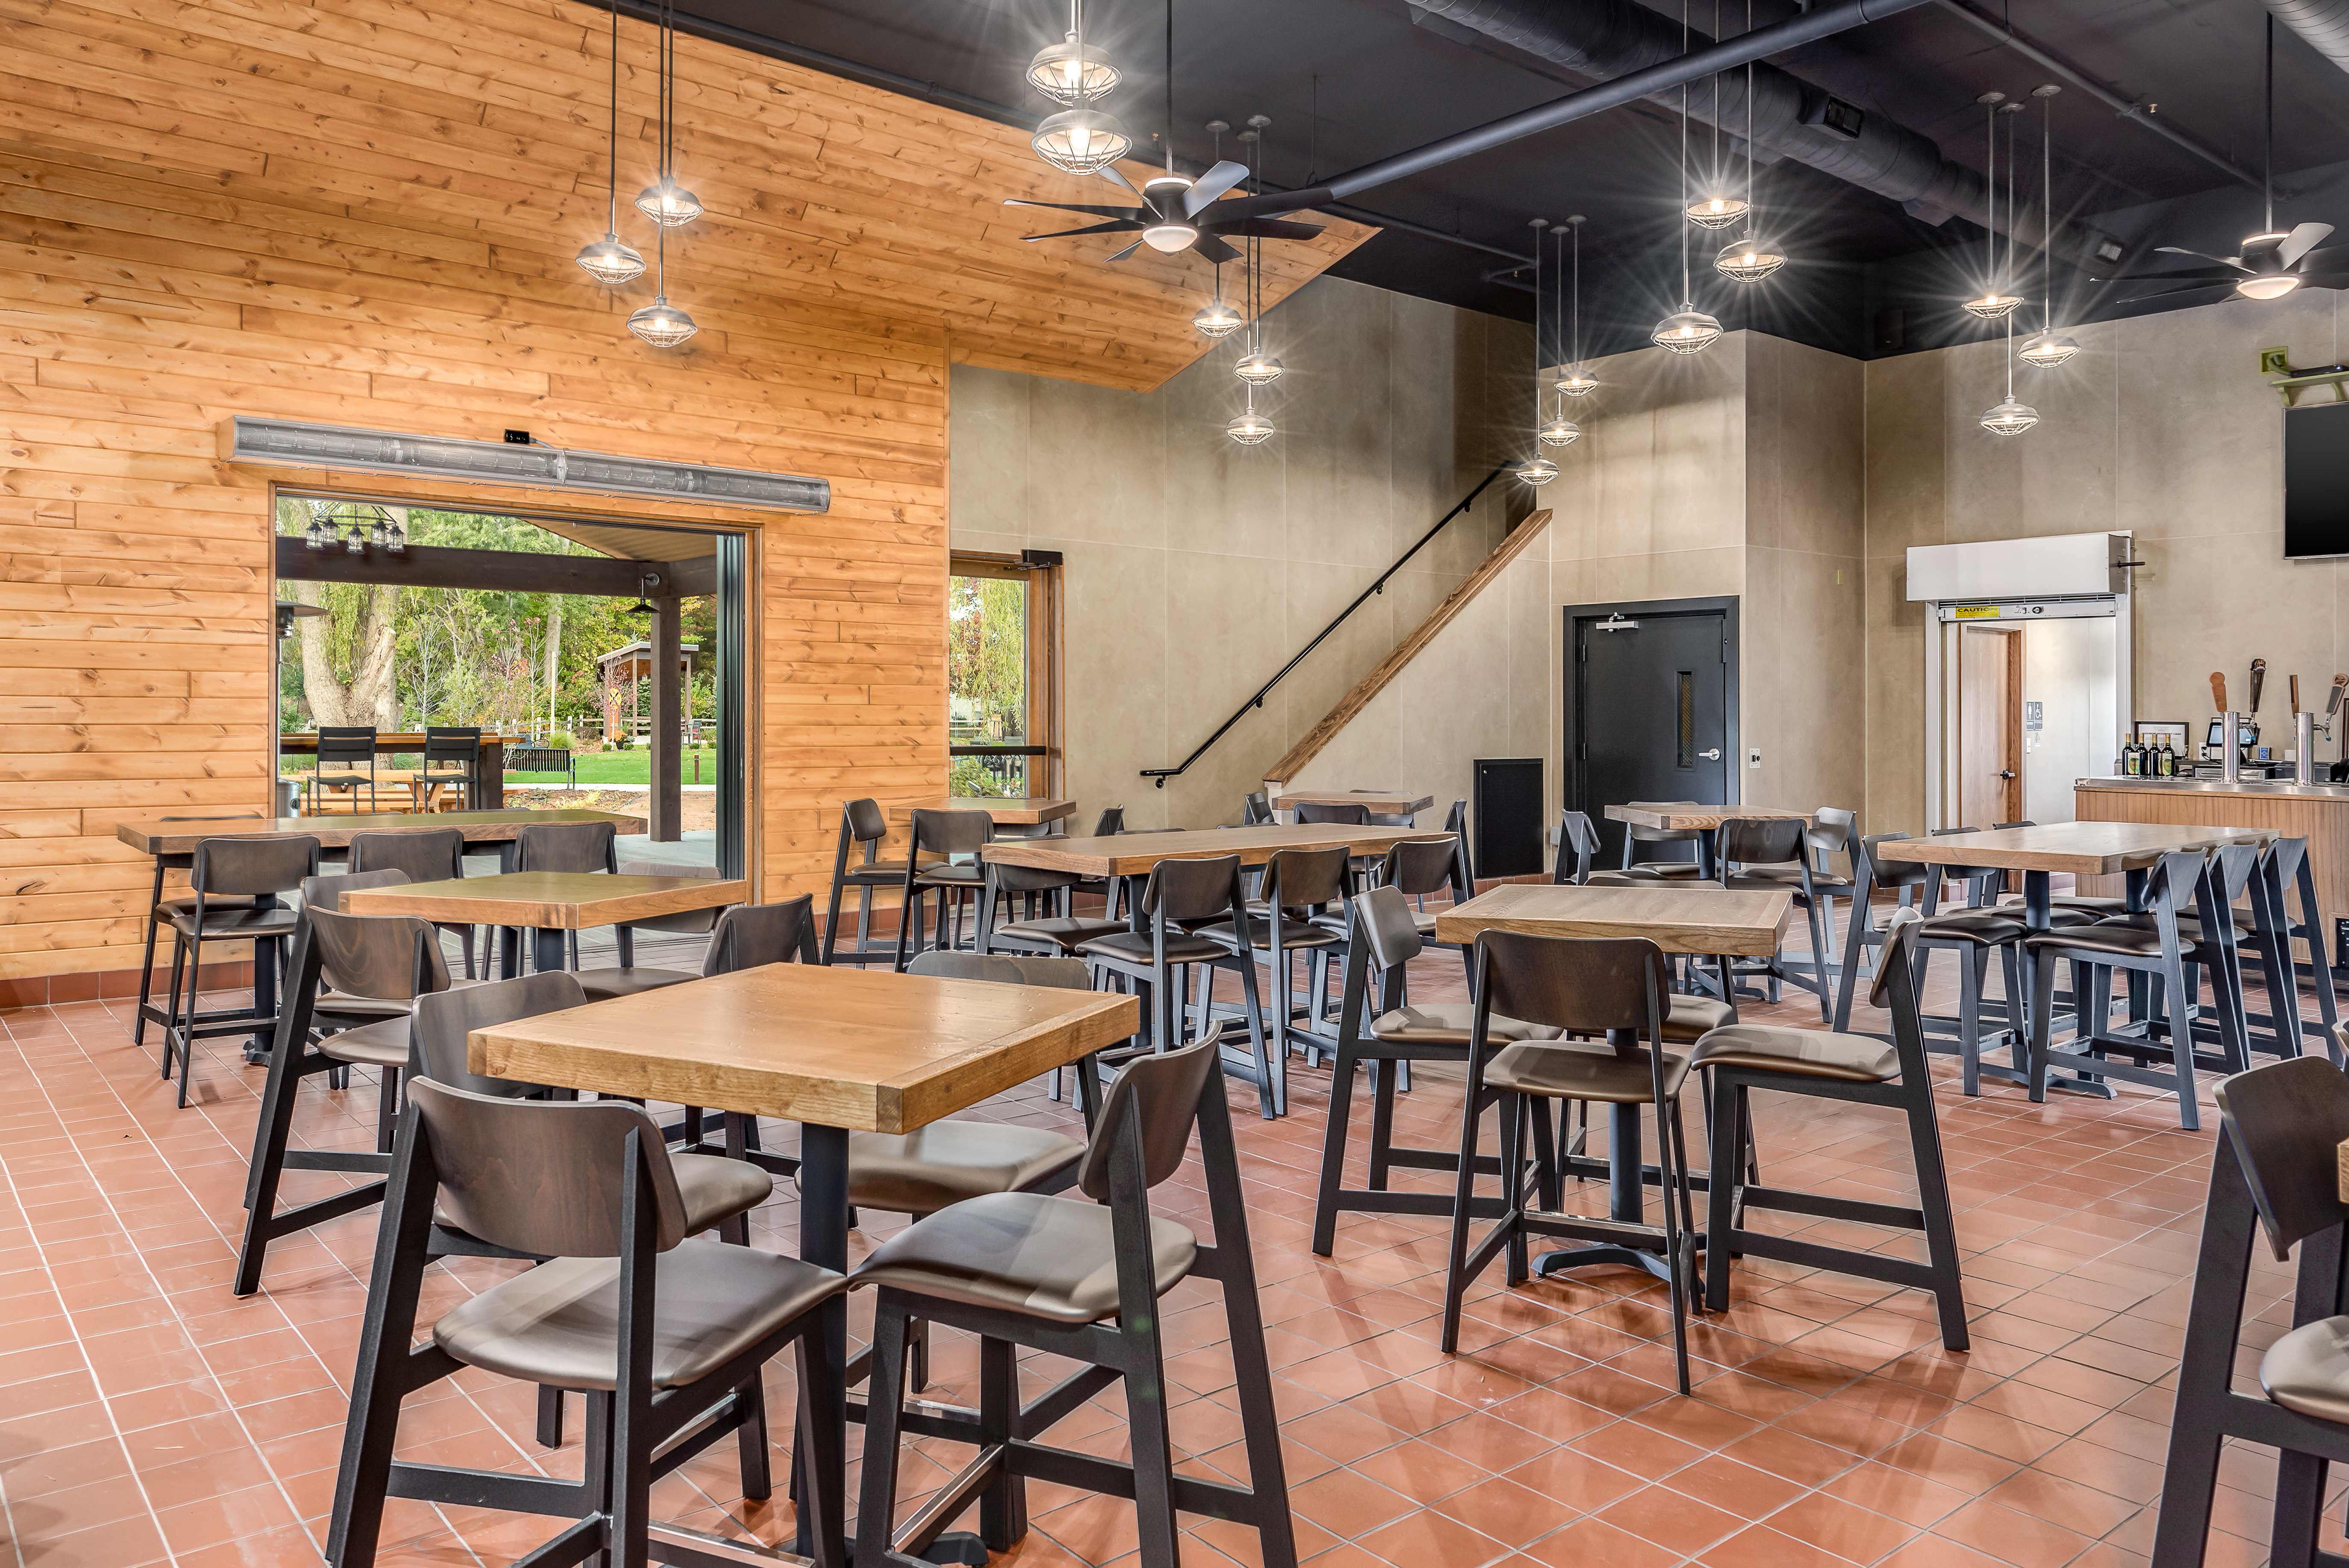 Interior view of the Red Keg Barrel House Event Venue and the design of the venue located in Midland, MI.